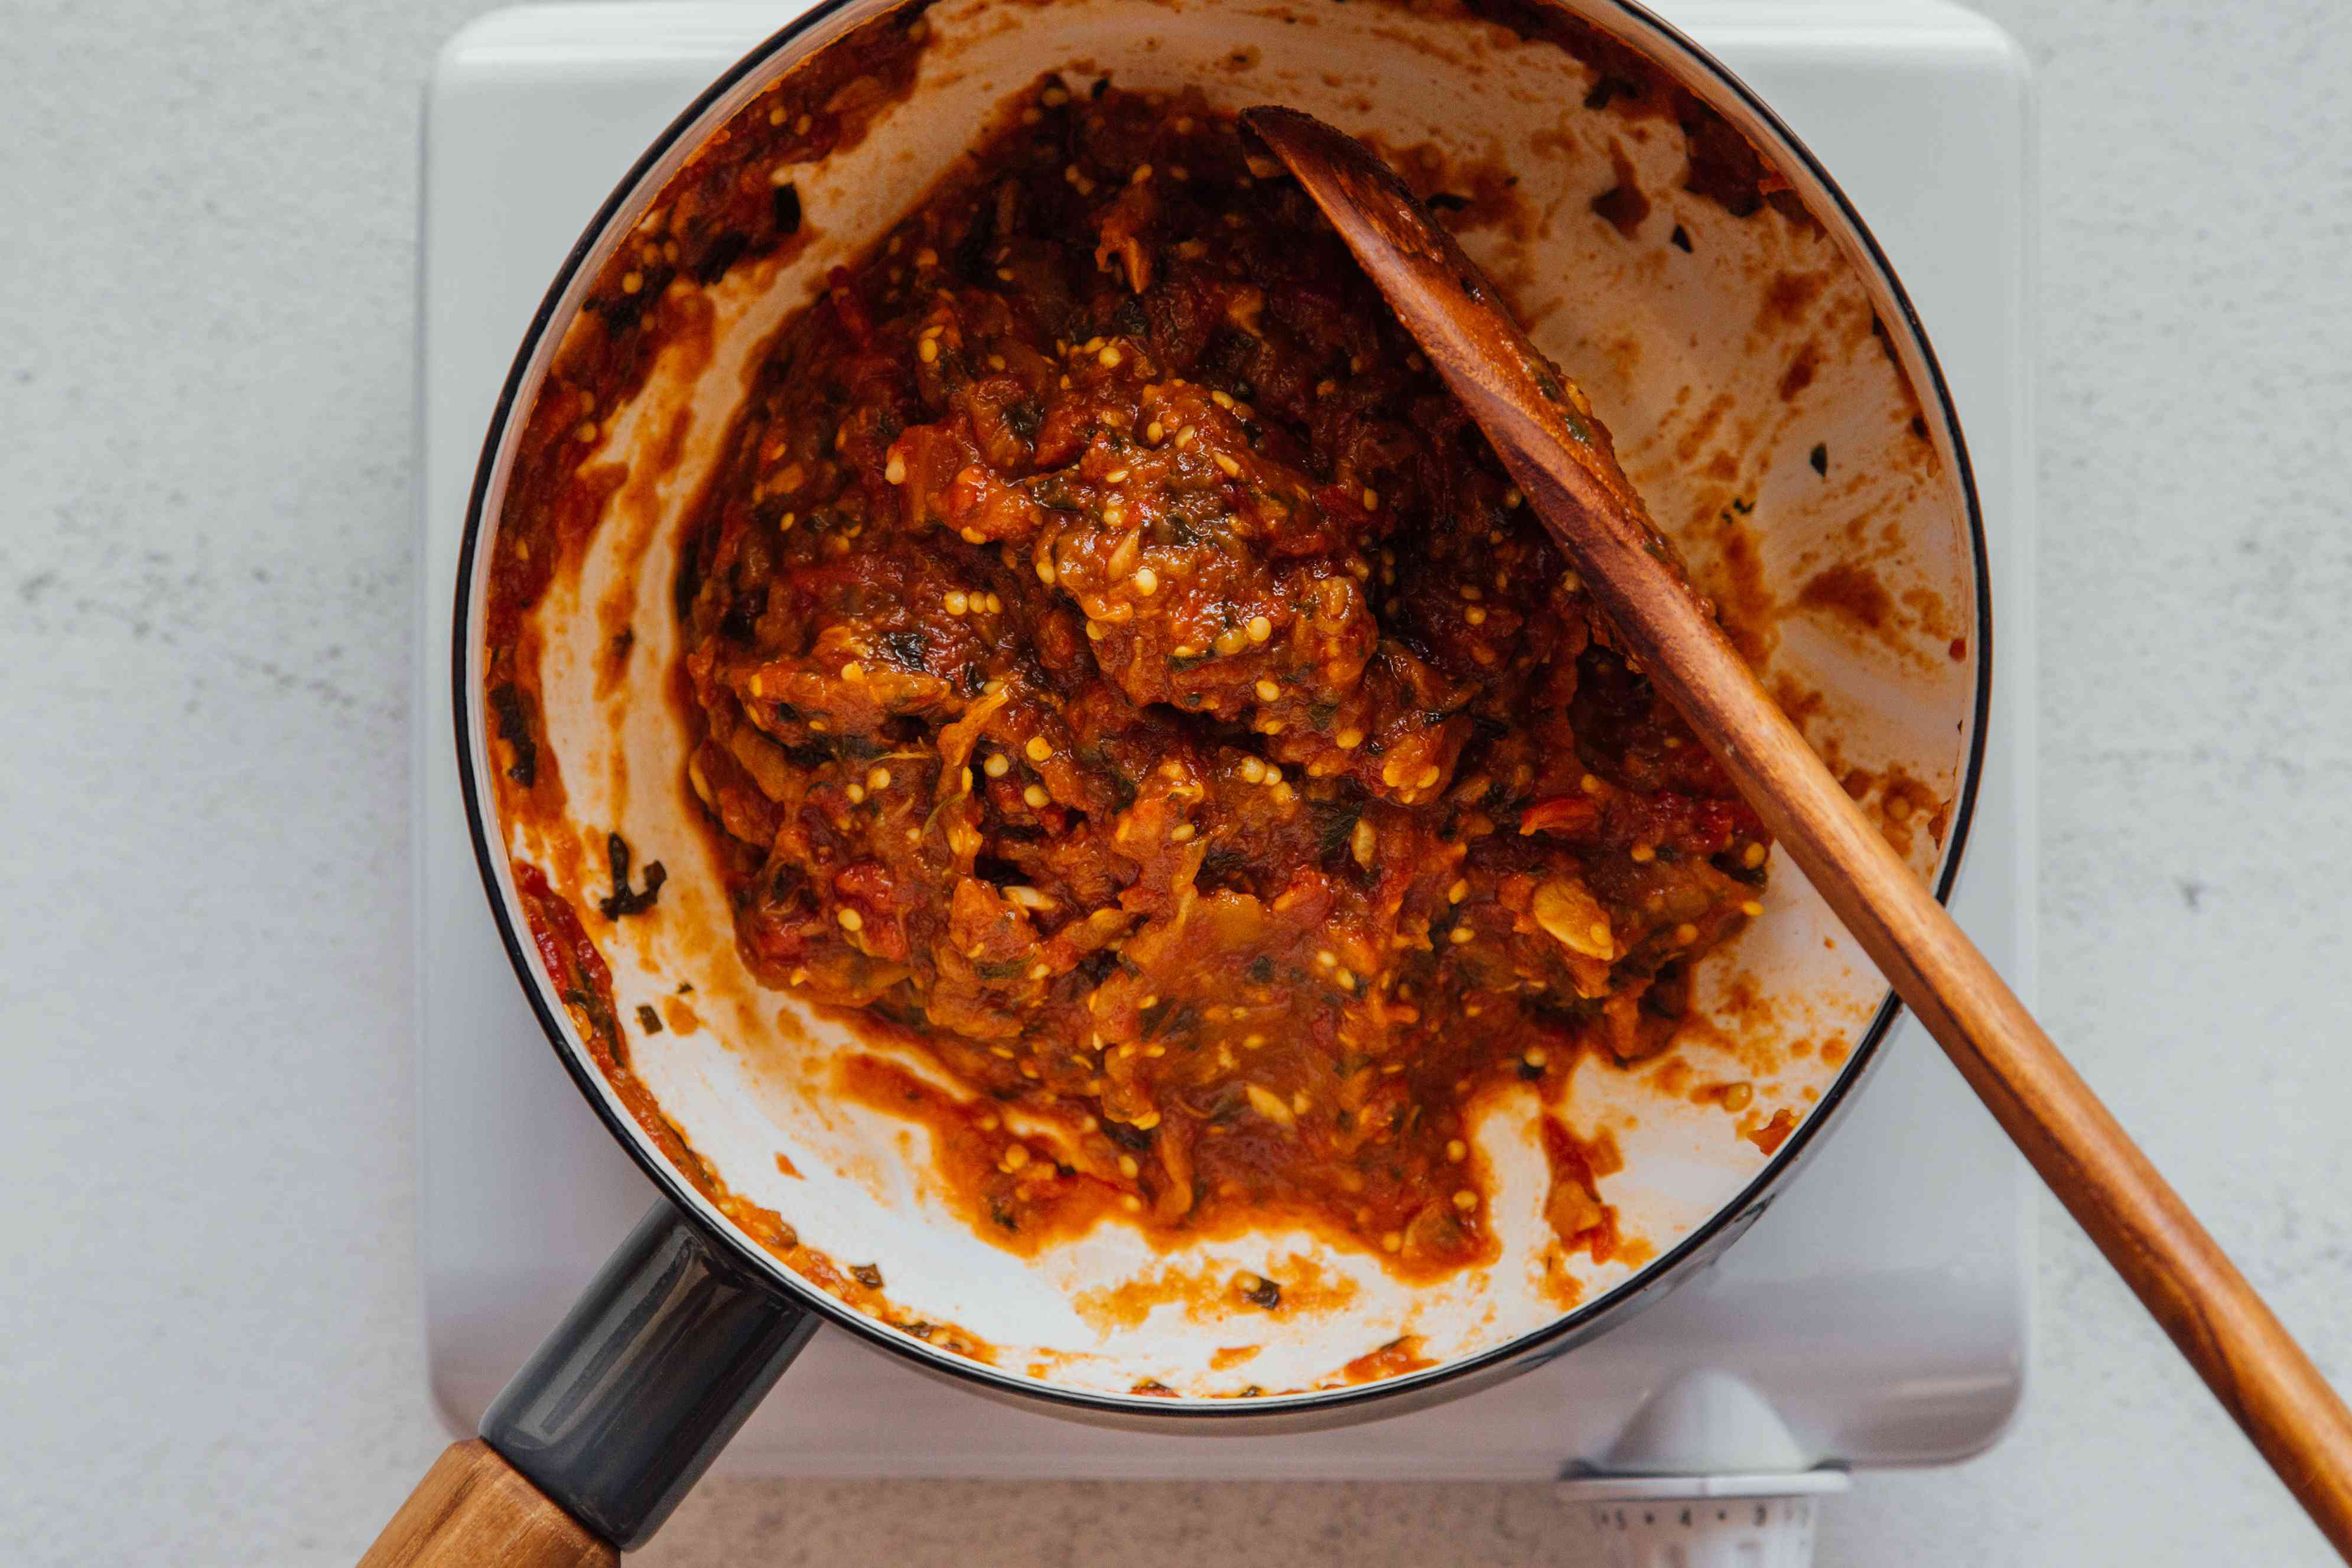 Moroccan Zaalouk (Cooked Eggplant and Tomato Salad) cooking in a pan